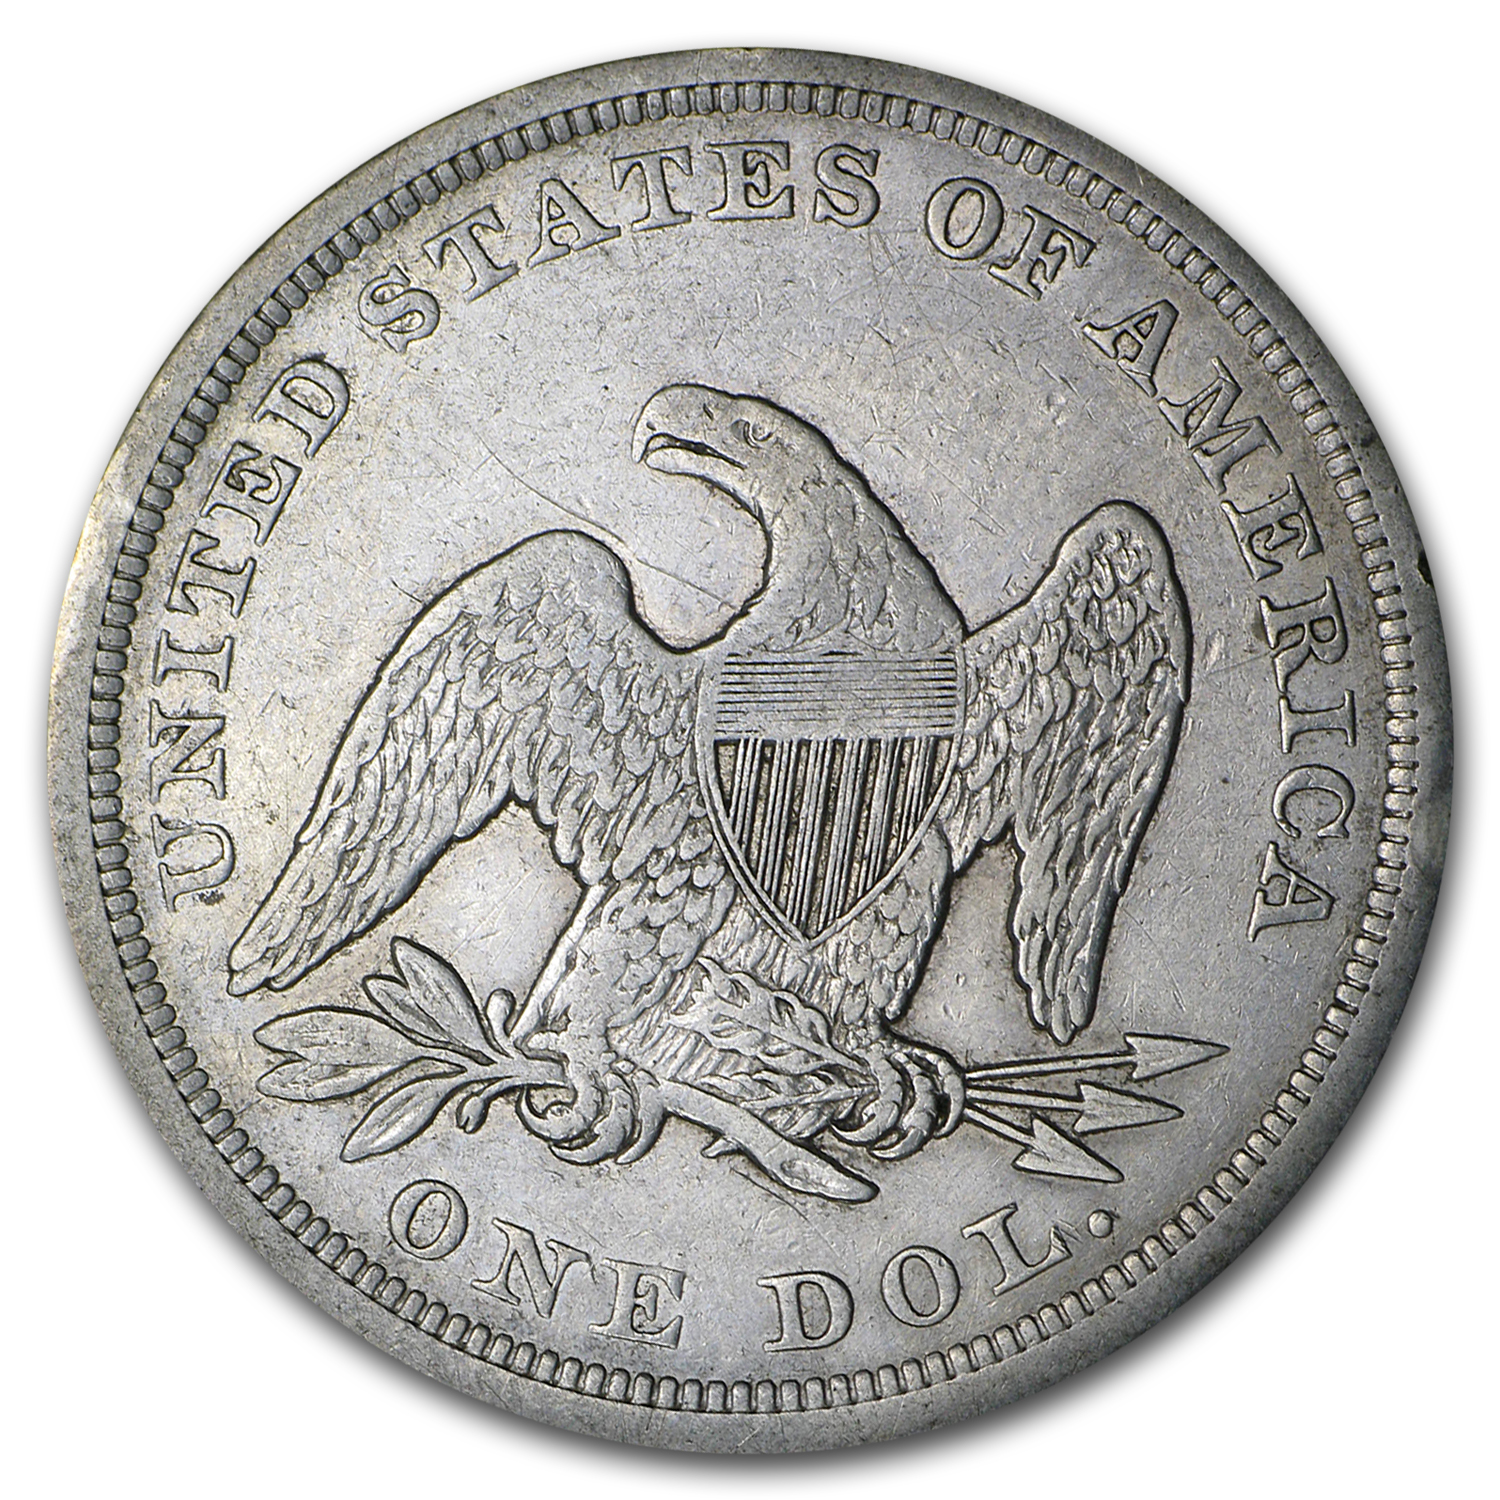 1840-1873 Liberty Seated Dollar - Very Fine